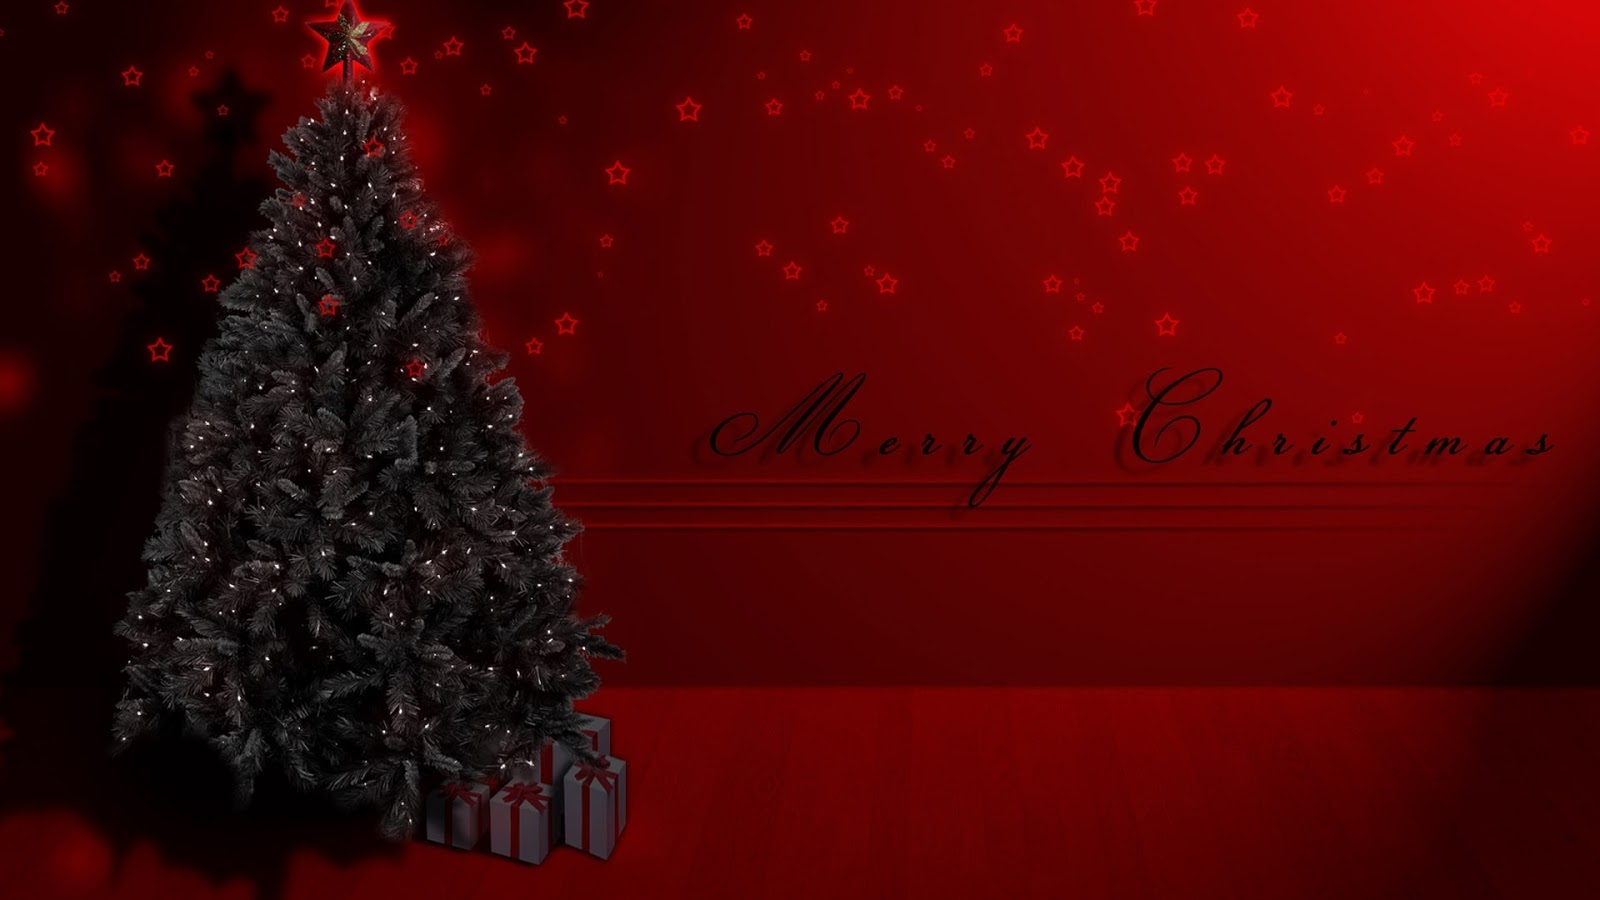 Christmas HD wallpapers 1080p | HD Wallpapers (High Definition) | Free Background